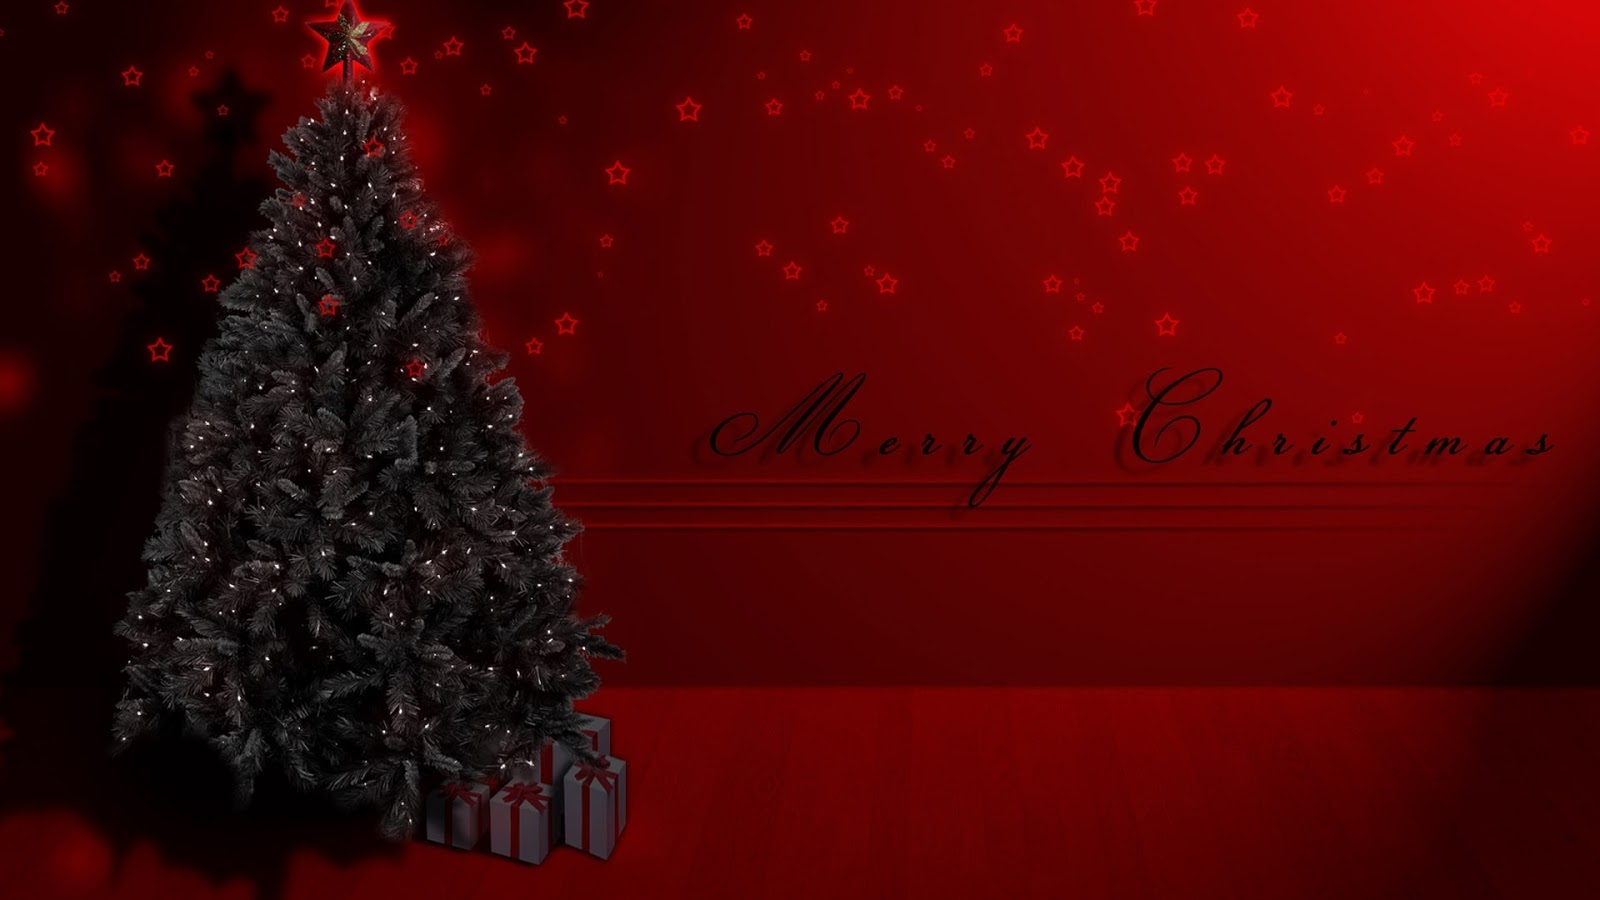 Christmas HD wallpapers 1080p | HD Wallpapers (High Definition) | Free Background